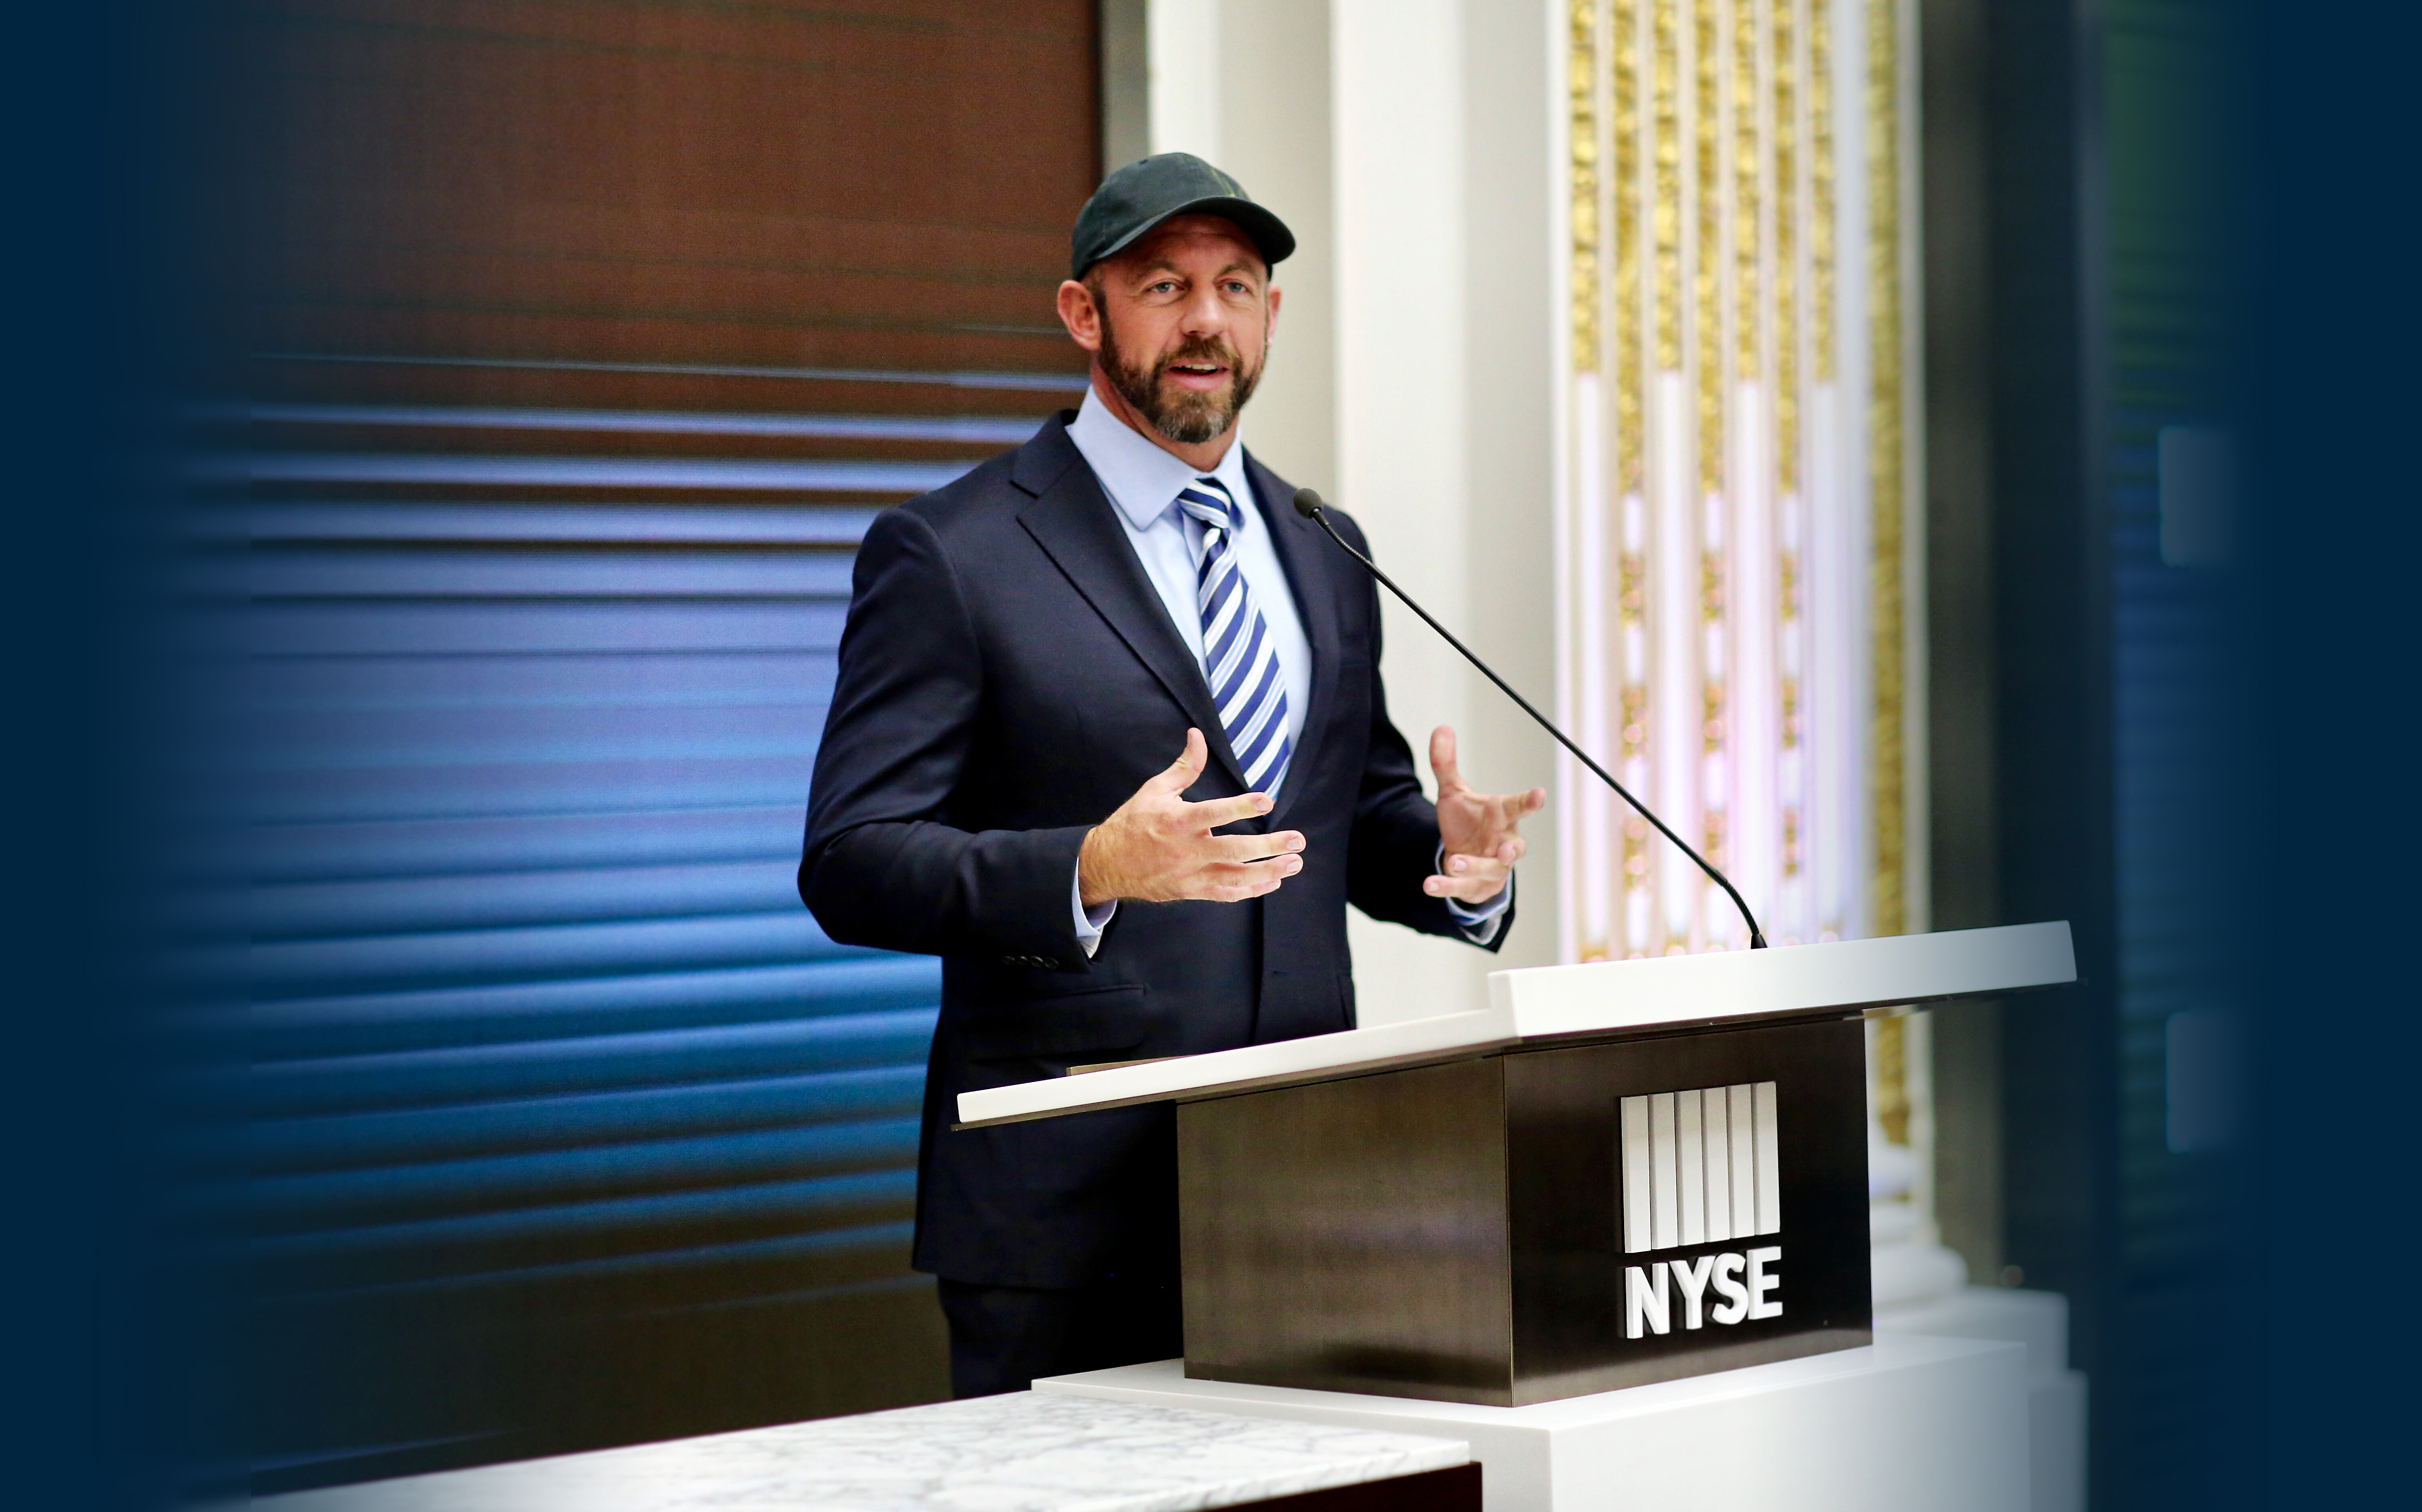 mike ritland speaking at nyse new york stock exchange